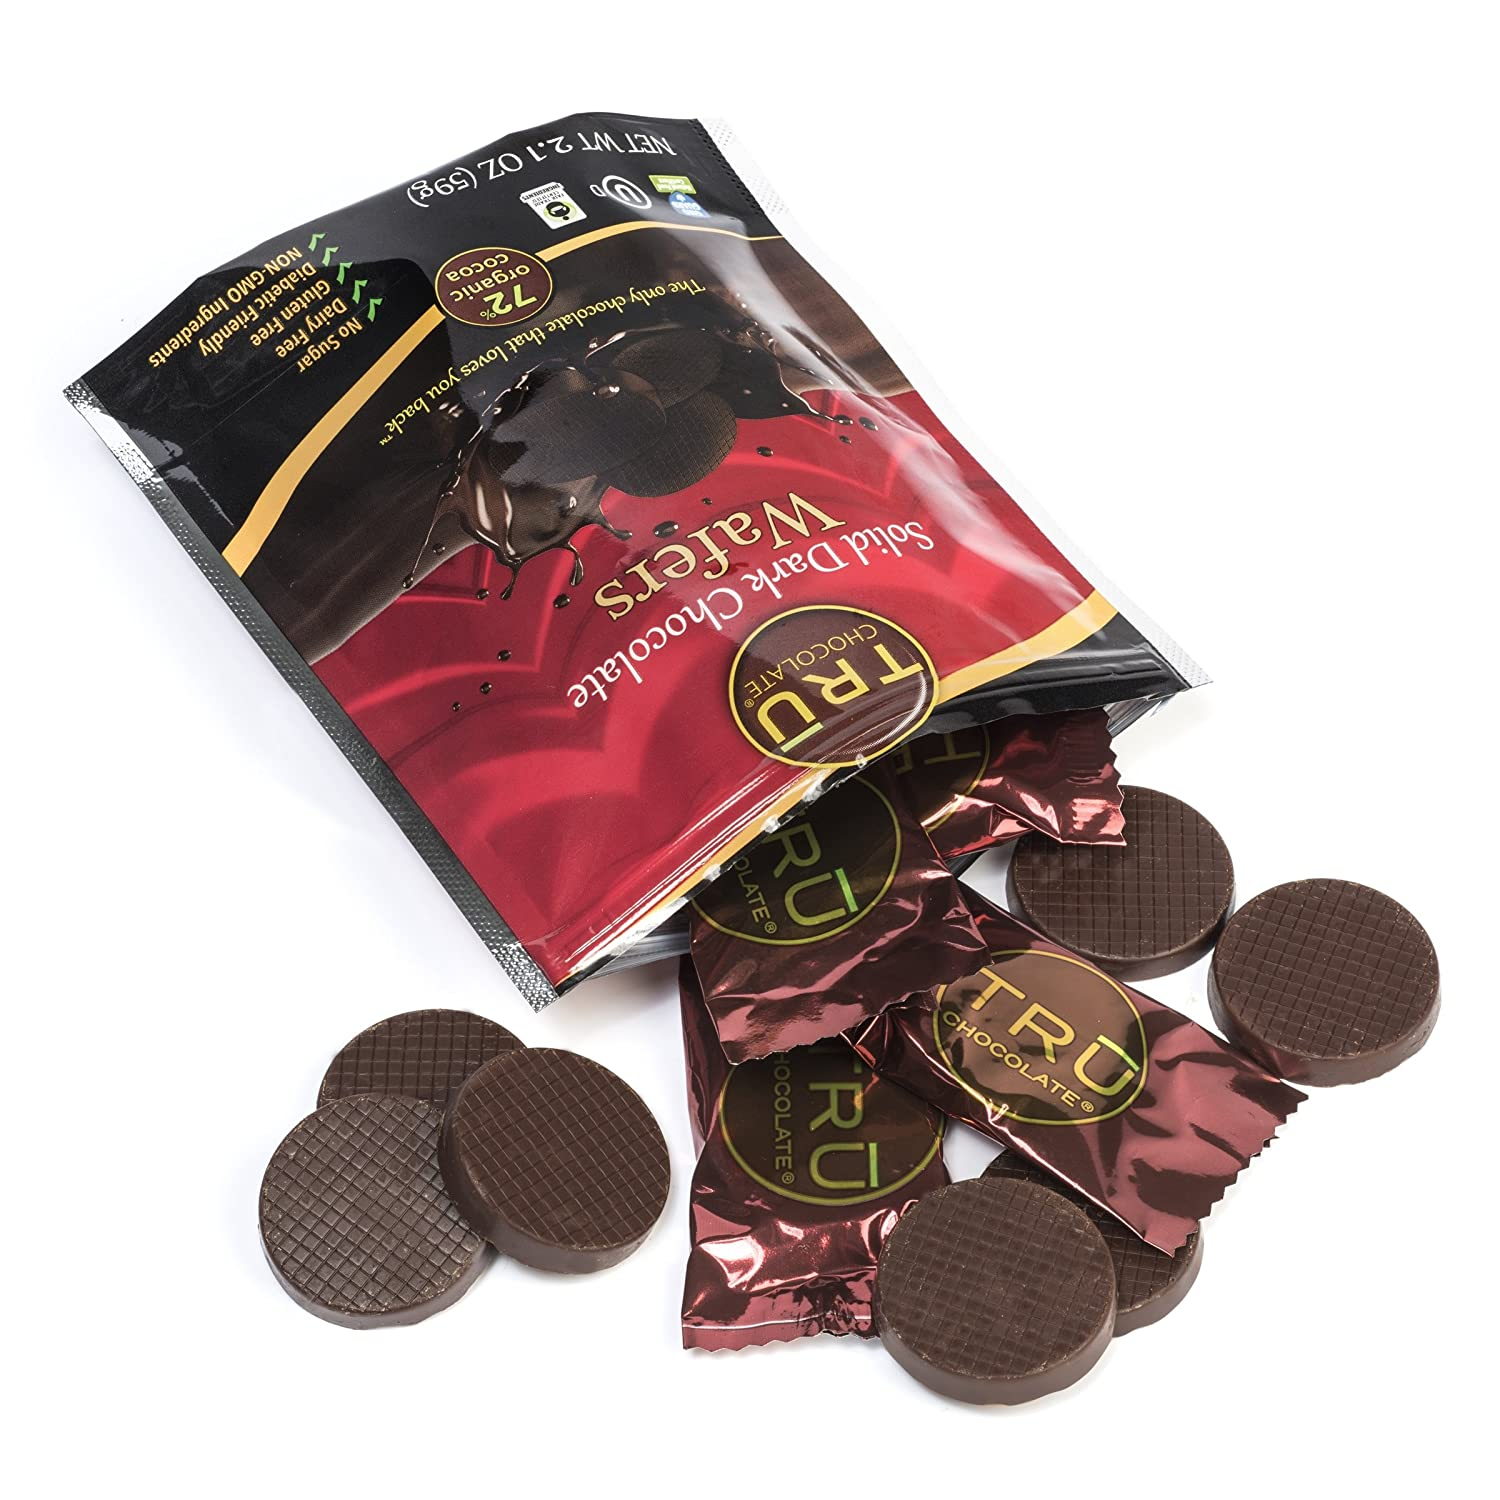 Amazon.com : Organic & All Natural 72% Dark Chocolate Wafers by ...